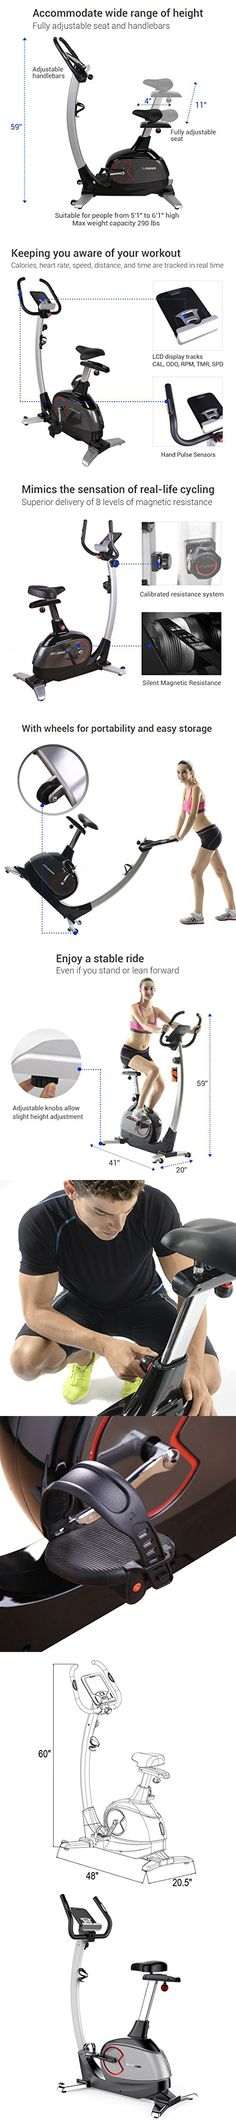 Fitleader Upright Bike Indoor Cardio Bike Magnetic Resistance Stationary Cycling Machine